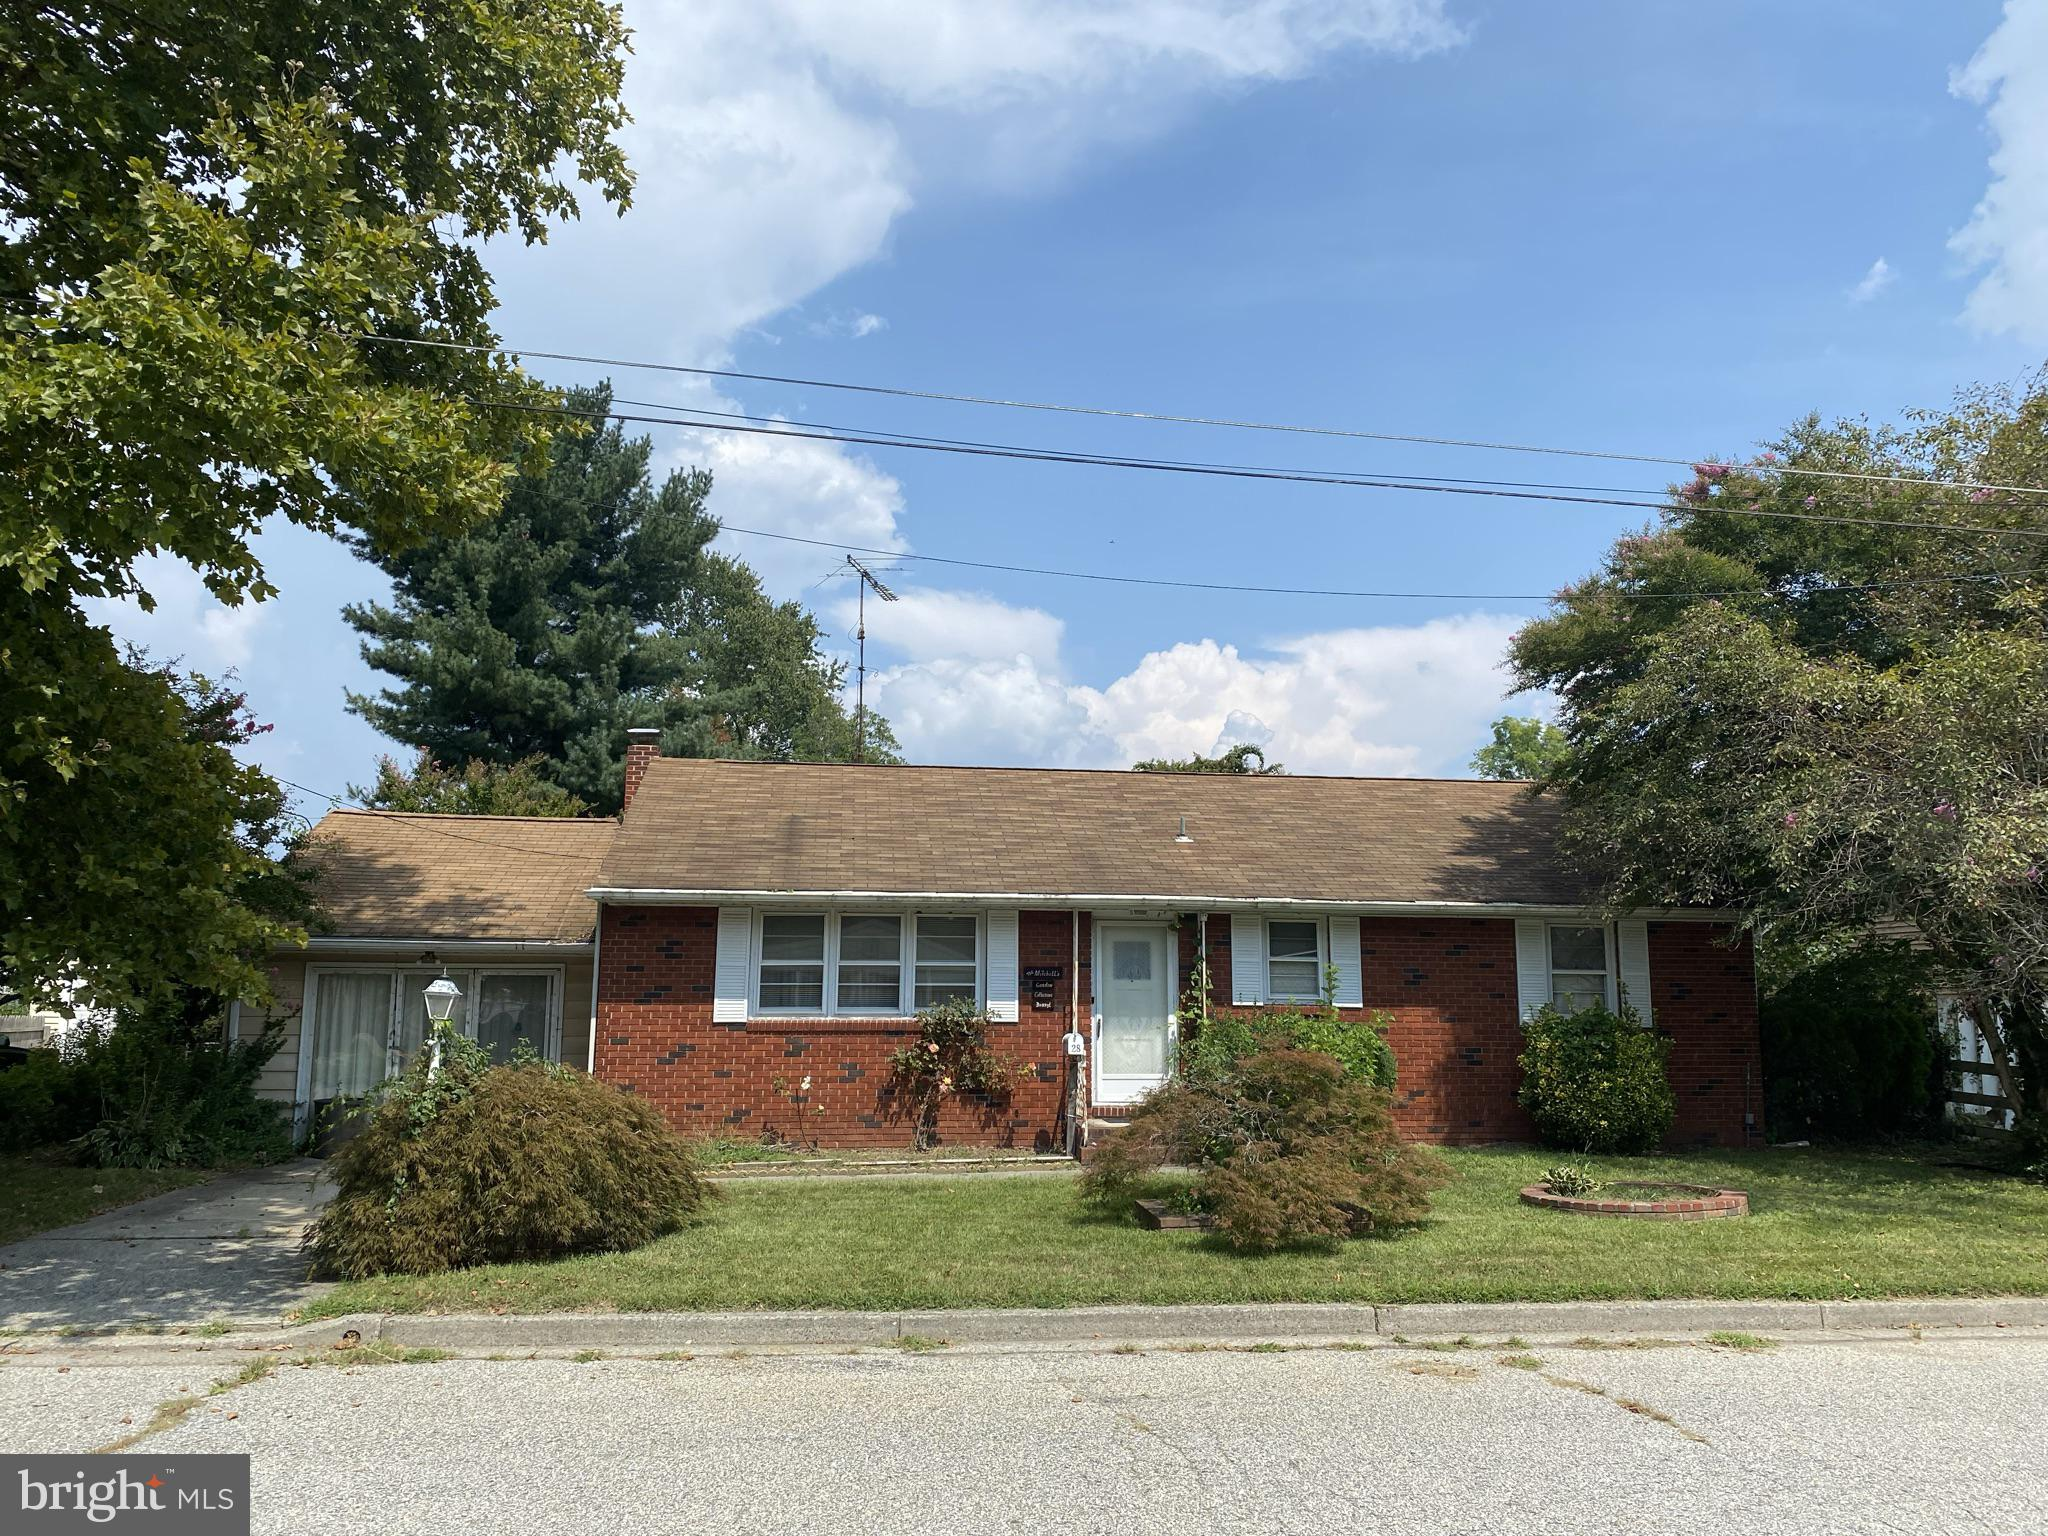 Welcome home! A lot more space thank you think for a 2 bedroom there's a large den, living room, and